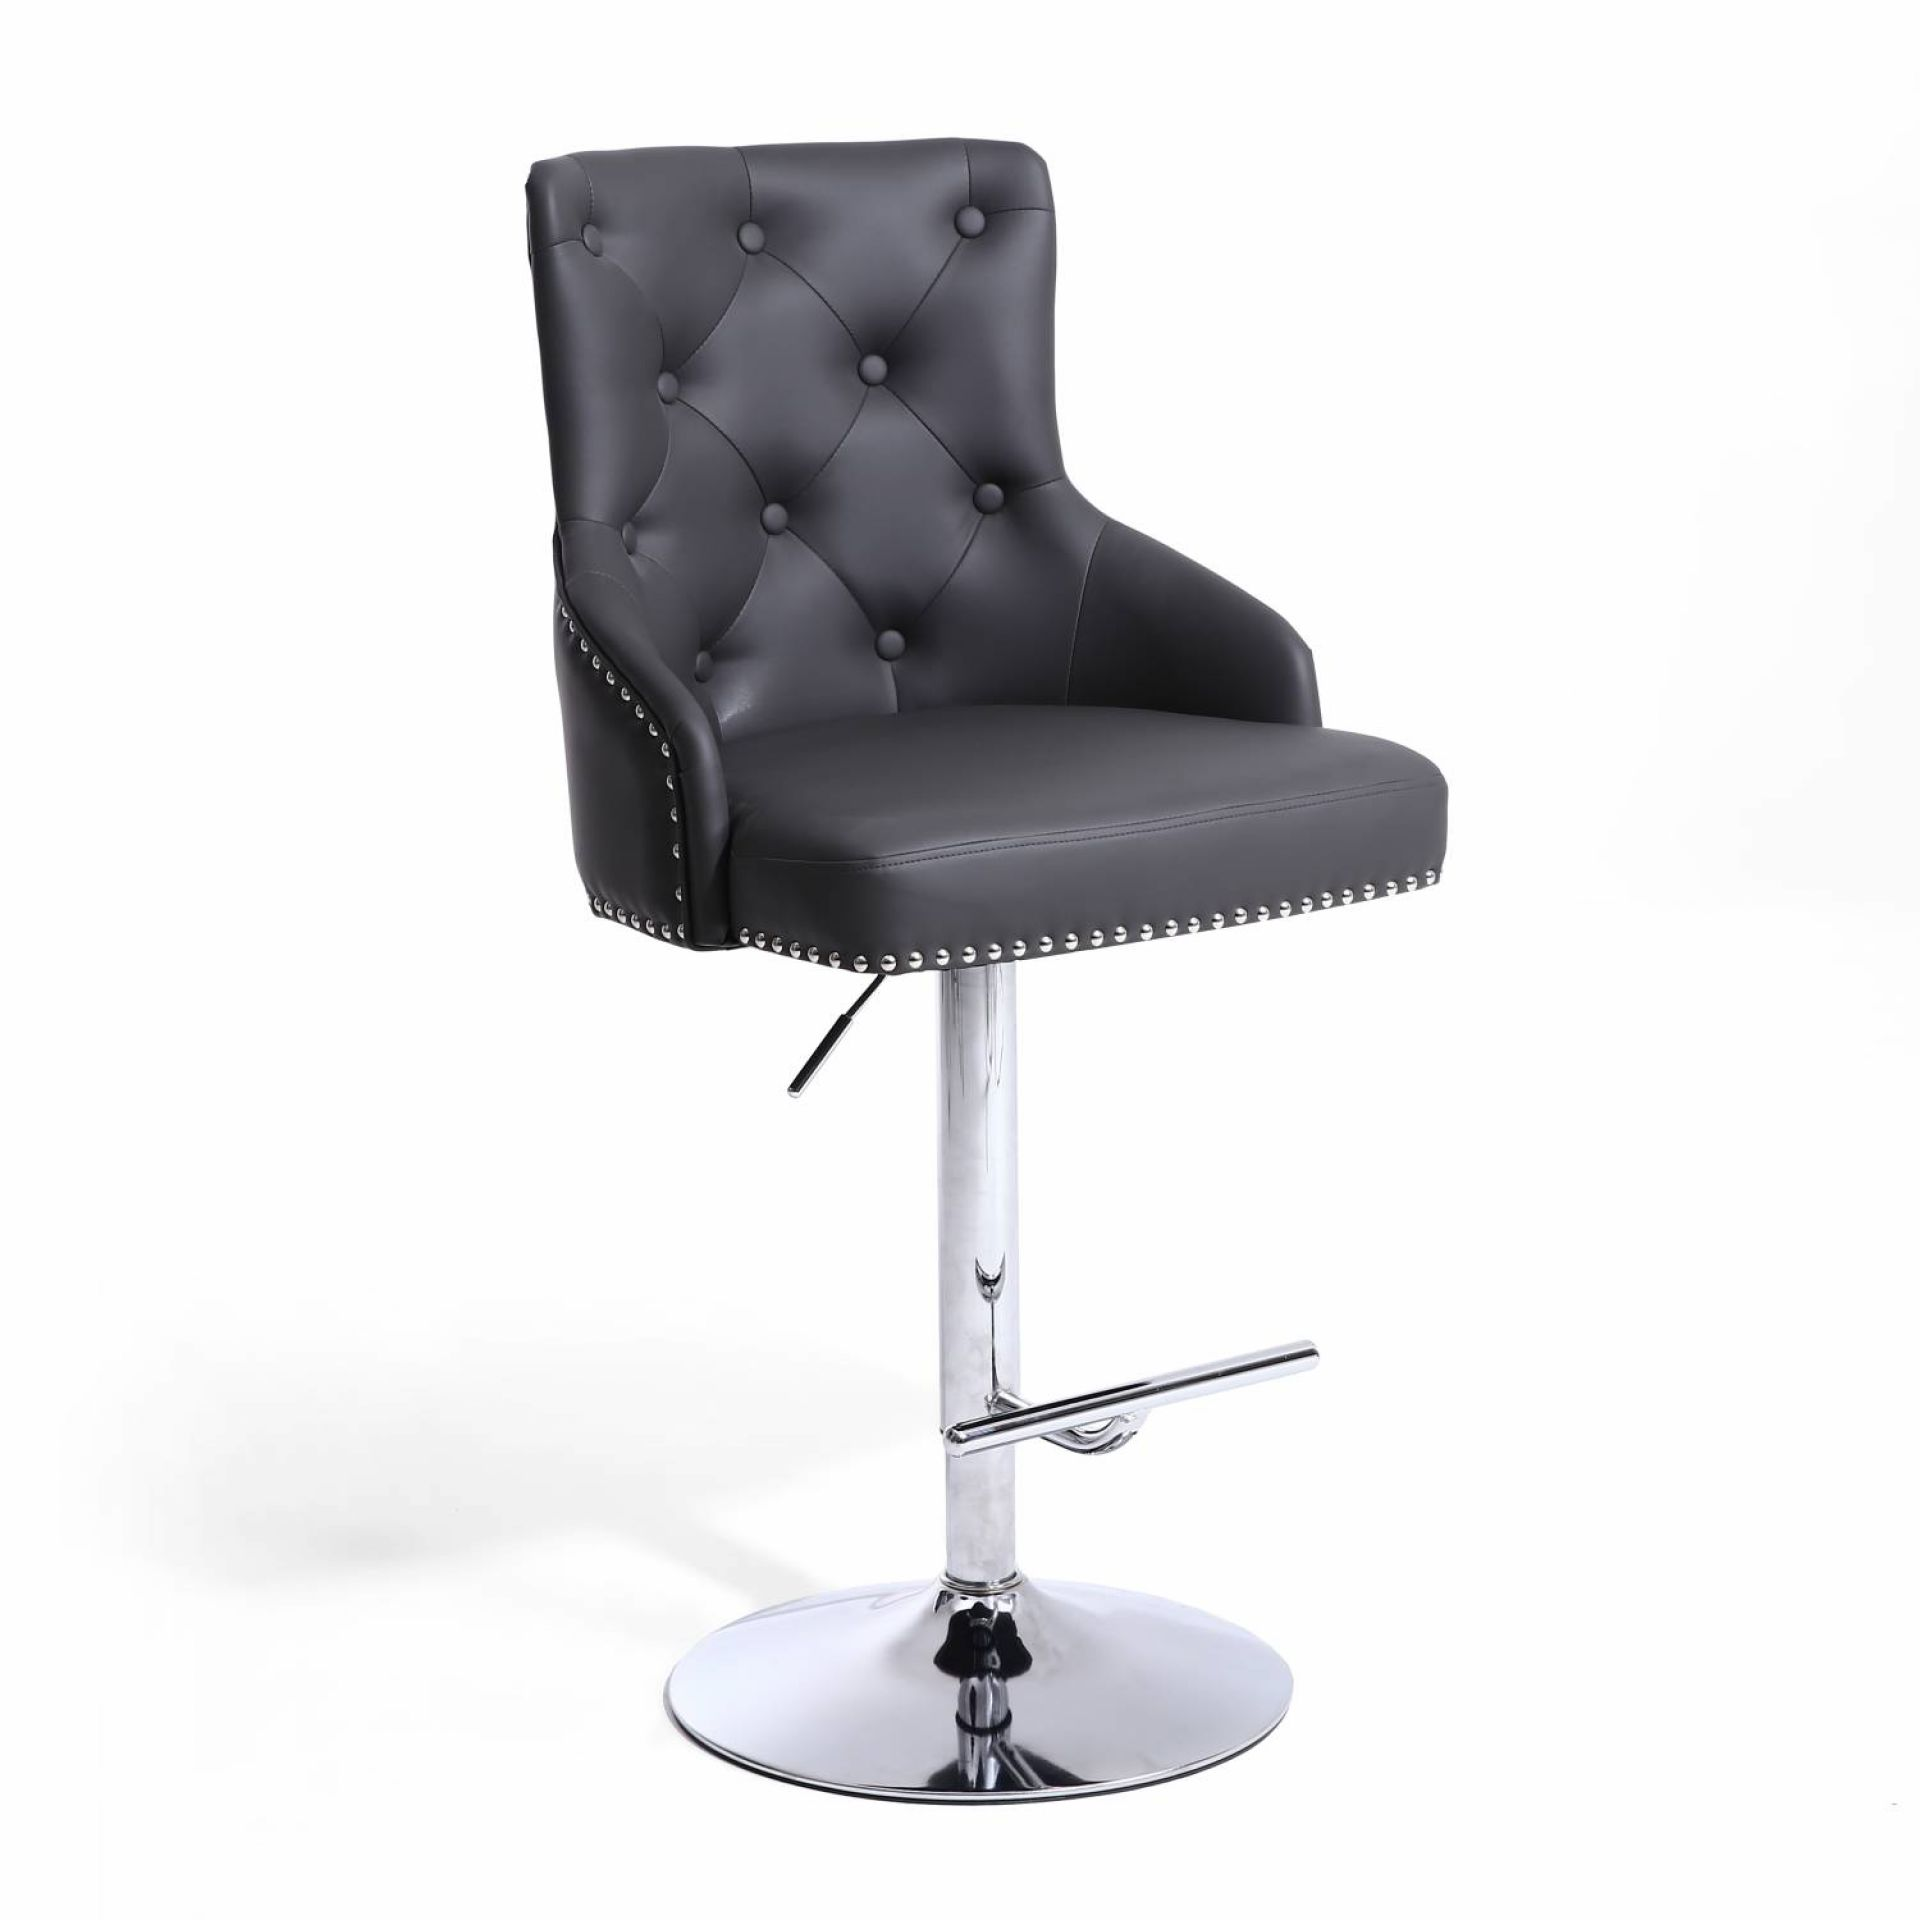 Rockley Graphite Grey Faux Leather & Chrome Buttoned Bar Stool